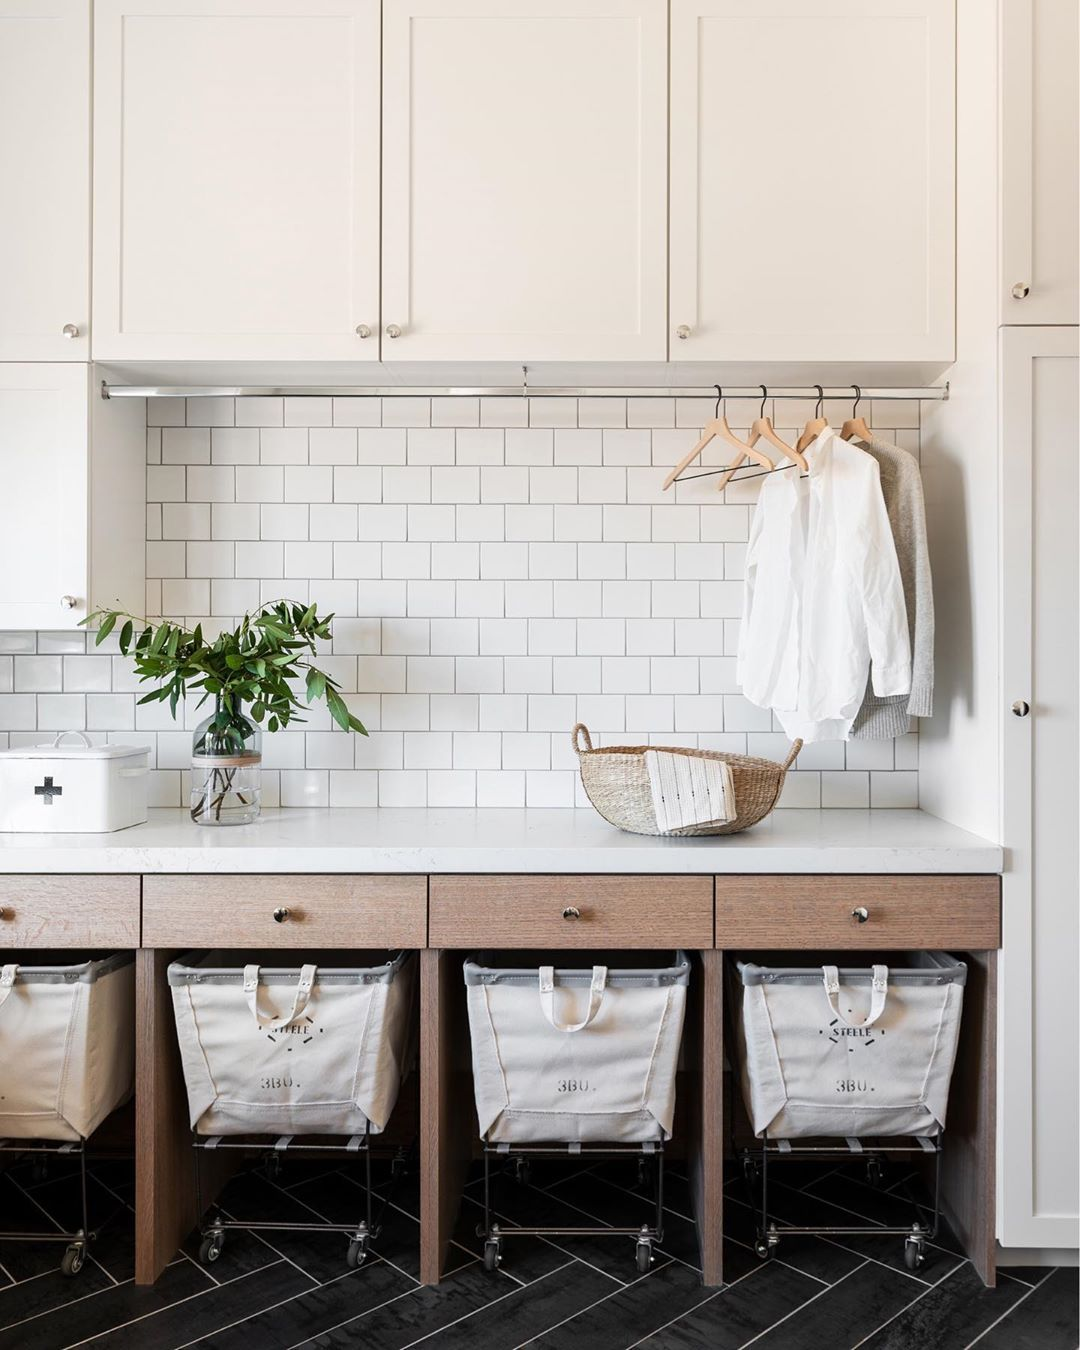 "Studio McGee on Instagram: ""Two-tone cabinets aren't just for kitchens - we love the look in laundry rooms too!"